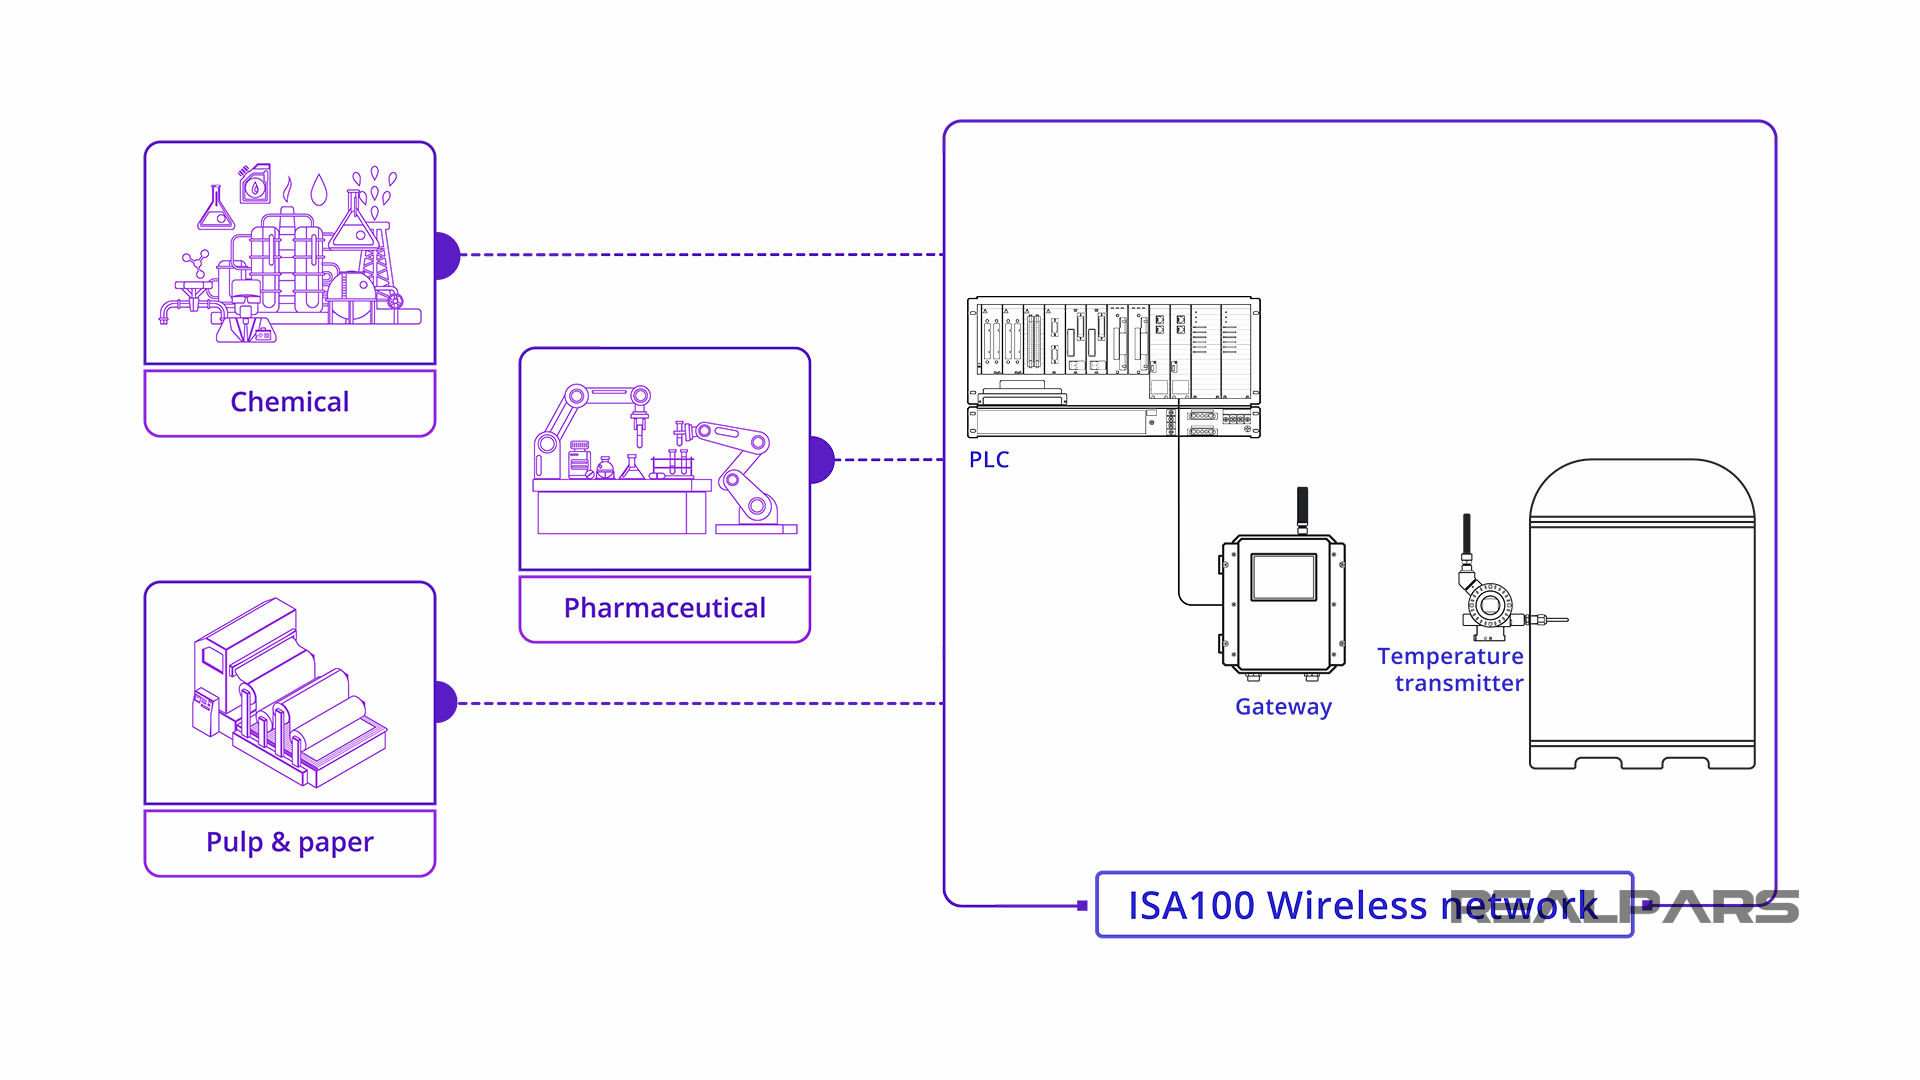 Basis of the ISA100 Wireless Design